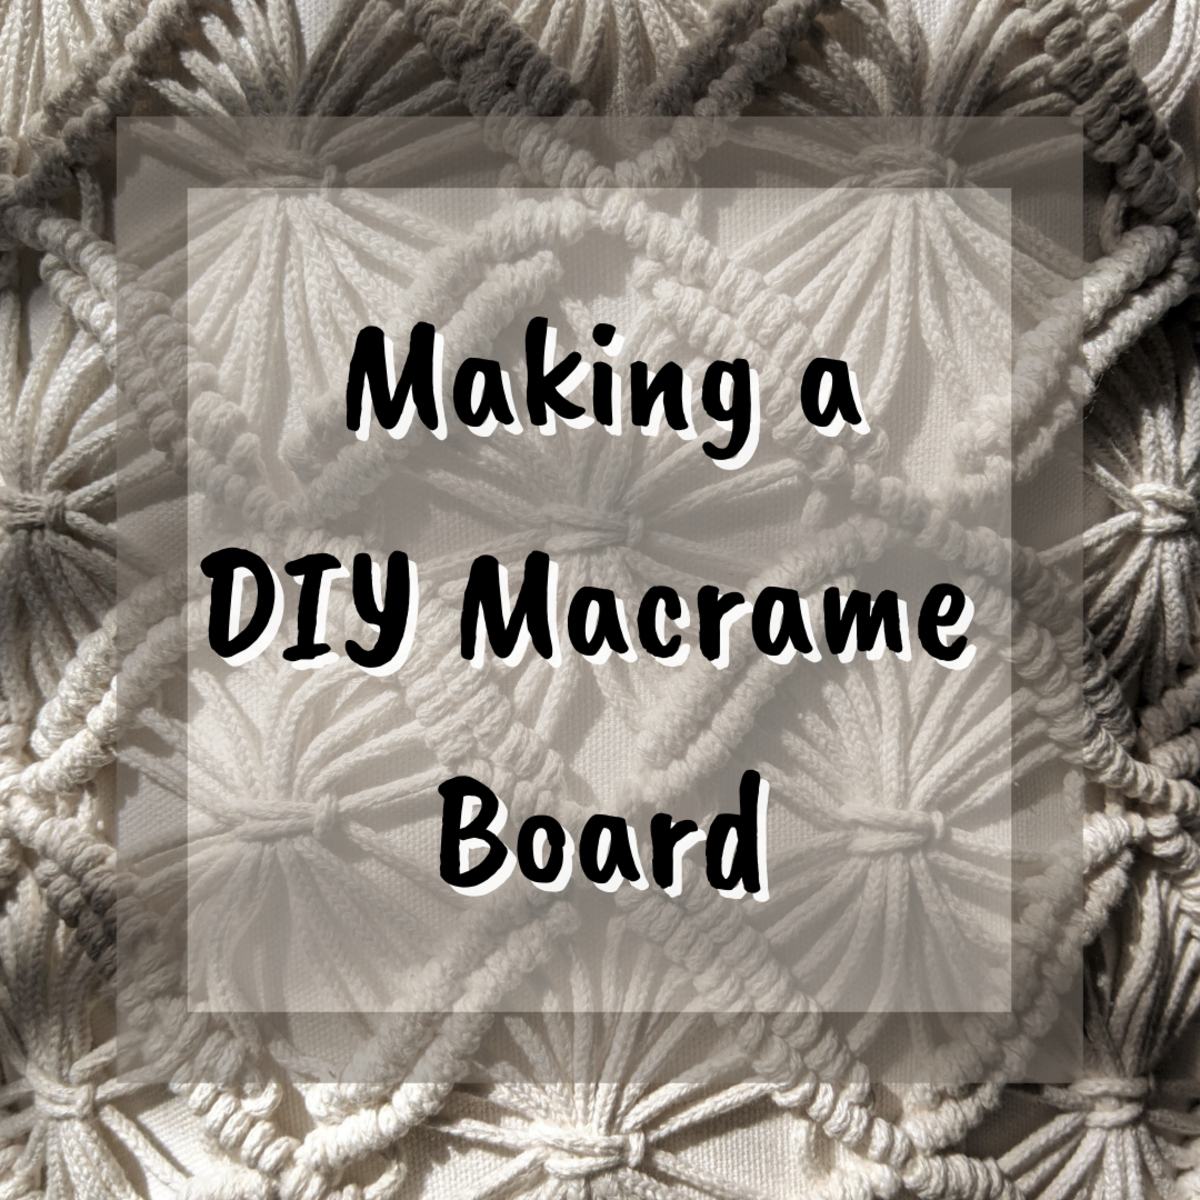 Learn how to easily and inexpensively create your own custom macrame board!